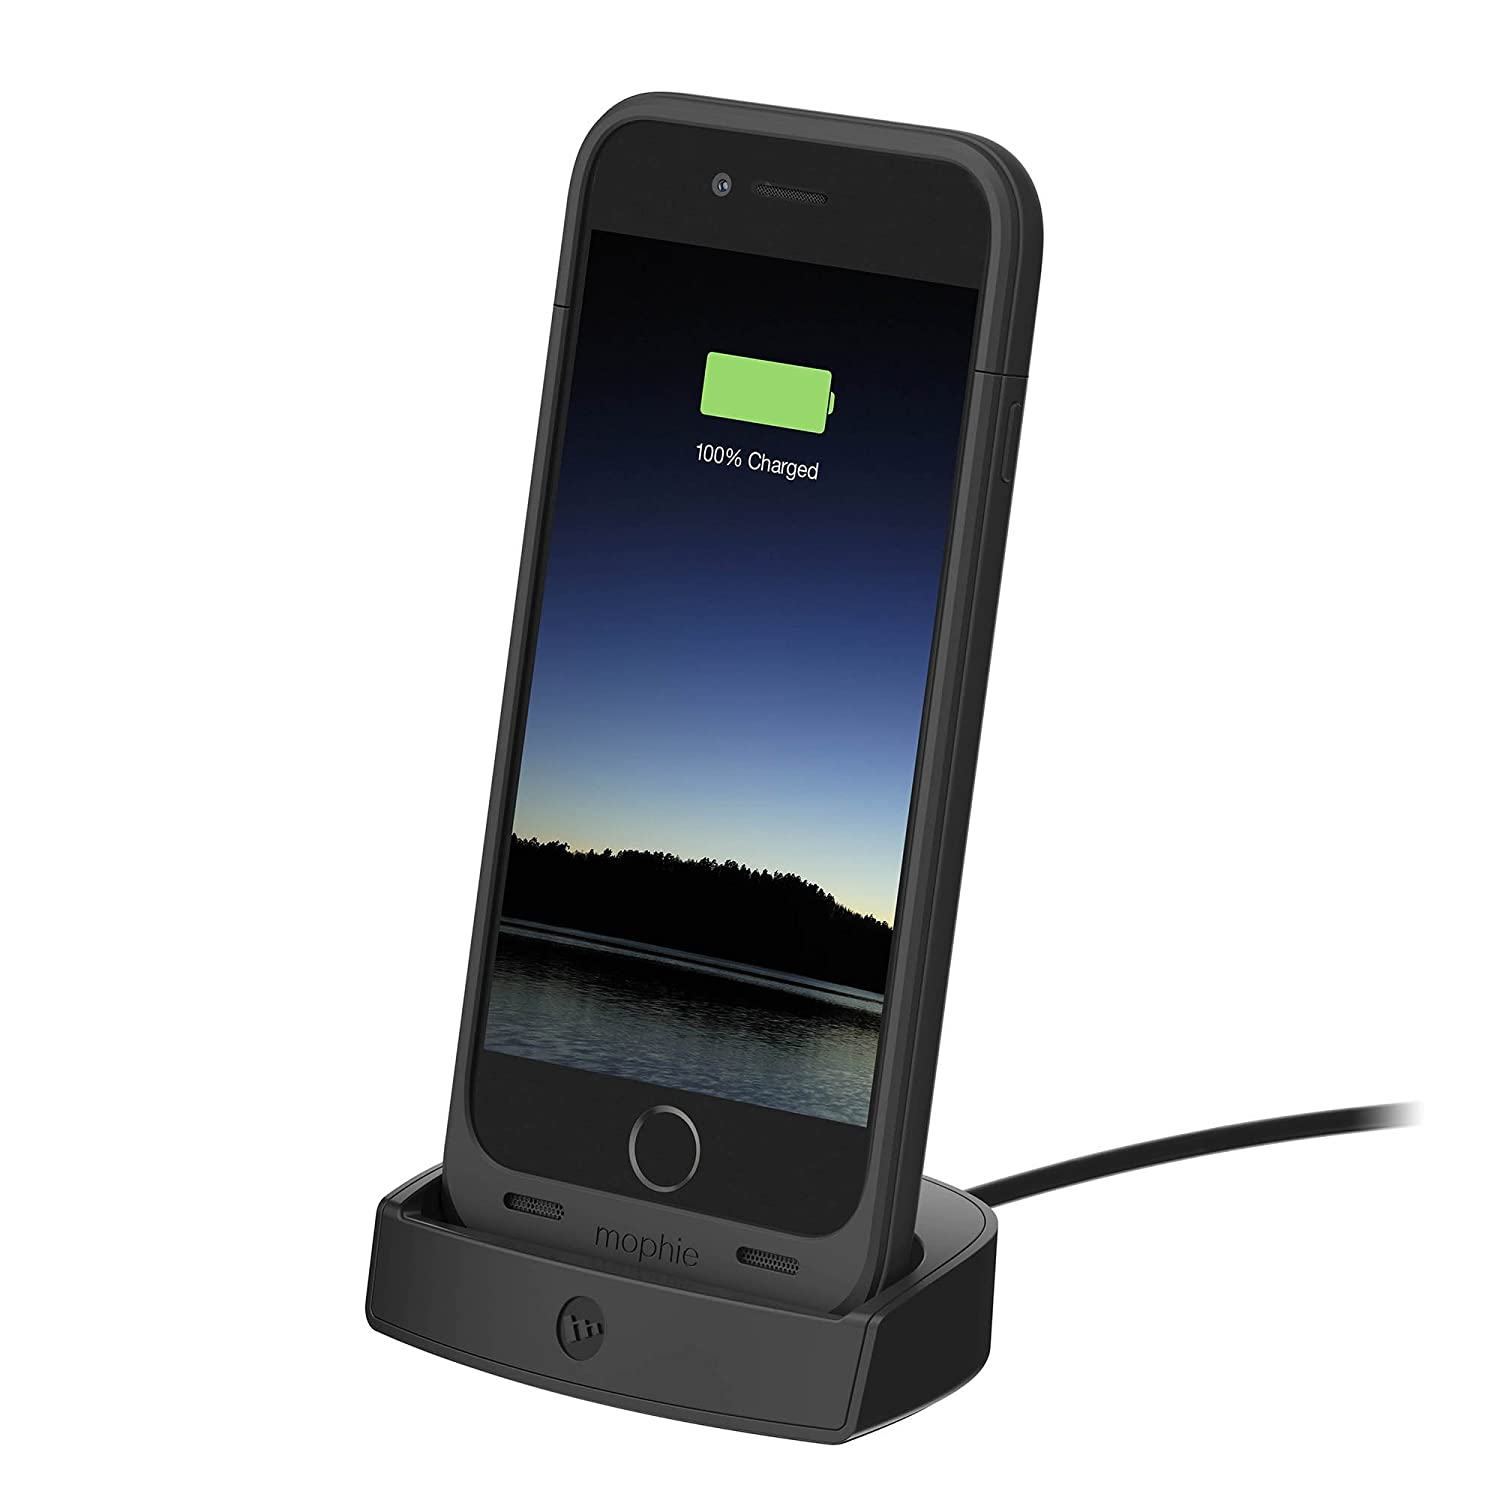 Mophie Juice pack Dock Charger (For iPhone 6) Image